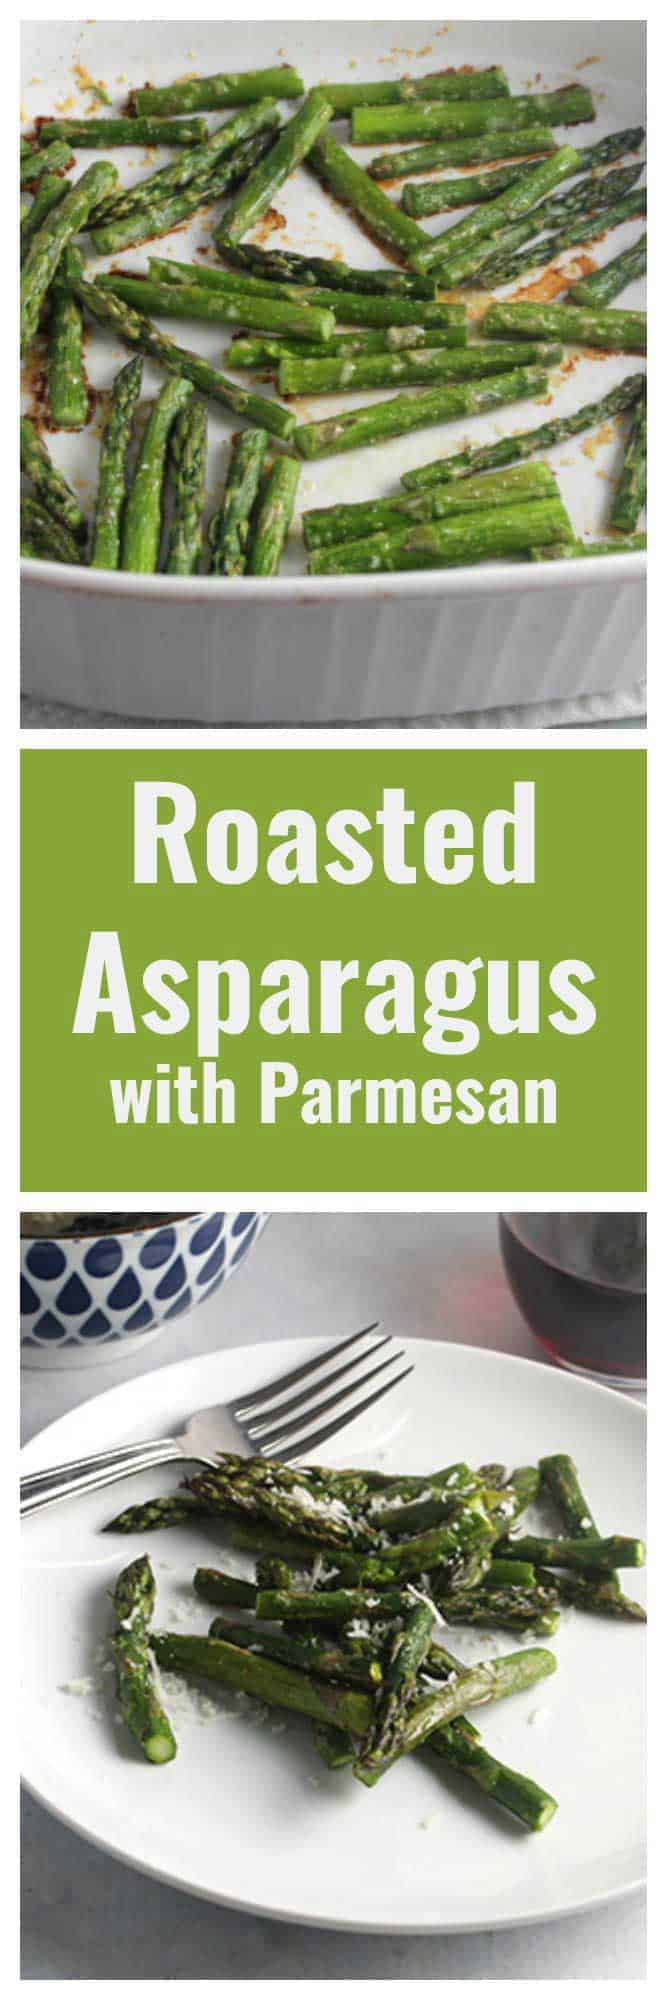 Roasted Asparagus with Parmesan recipe is an easy and tasty spring side dish. #SundaySupper #asparagus #roastedveggies #sidedish